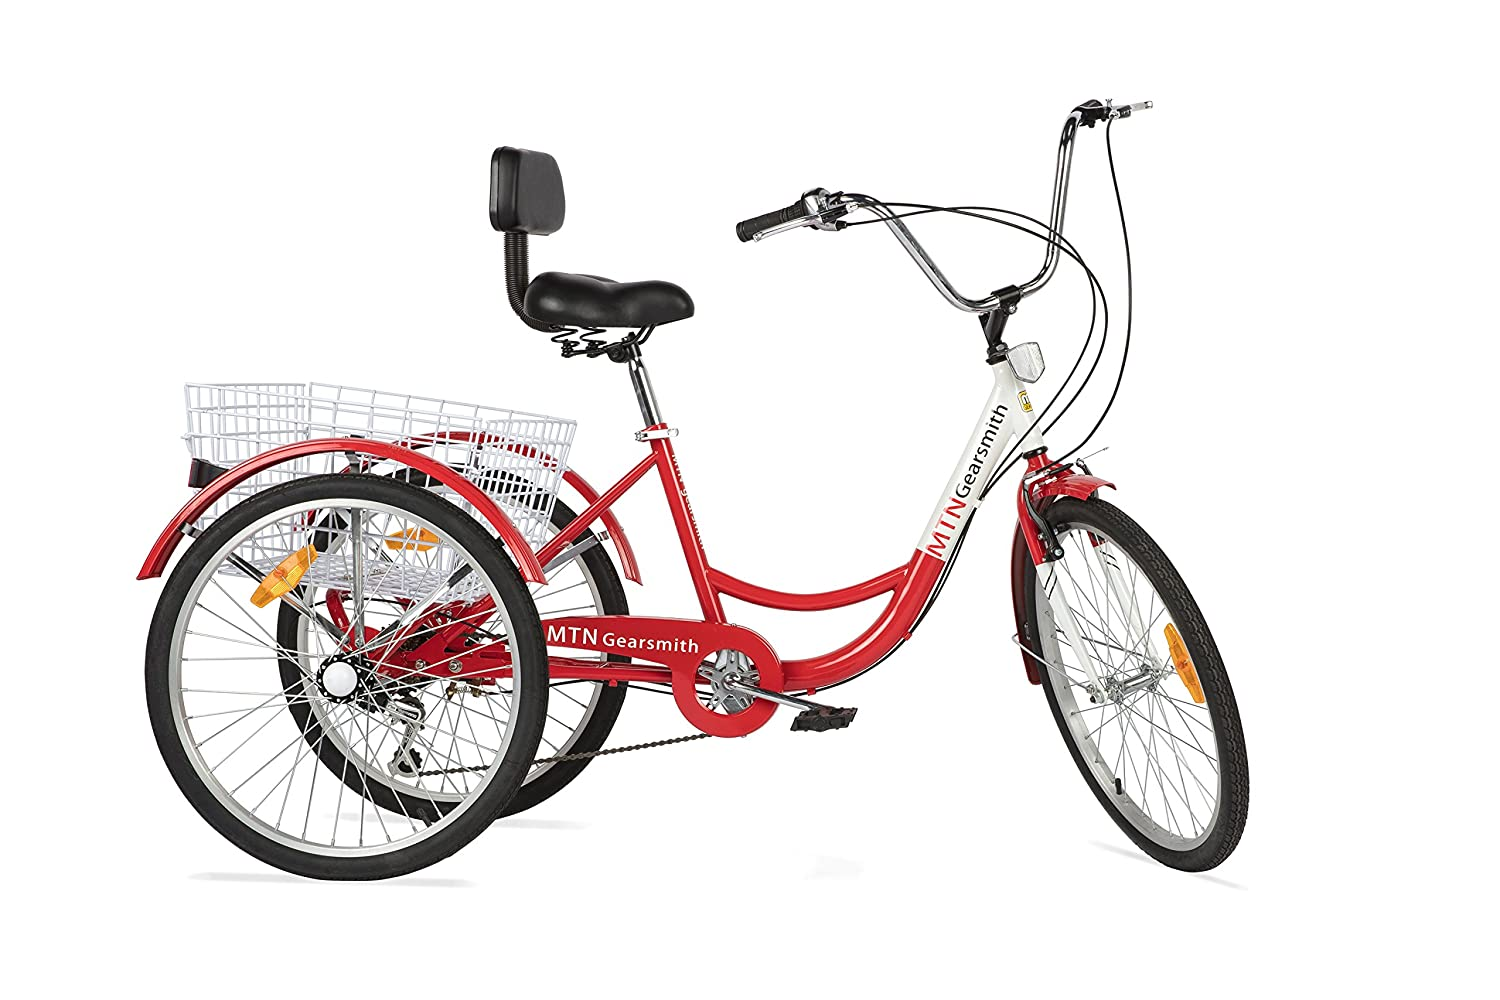 Komodo Cycling 6-Speed Adult Tricycle – Best Out Of the Box touring tricycles for adults